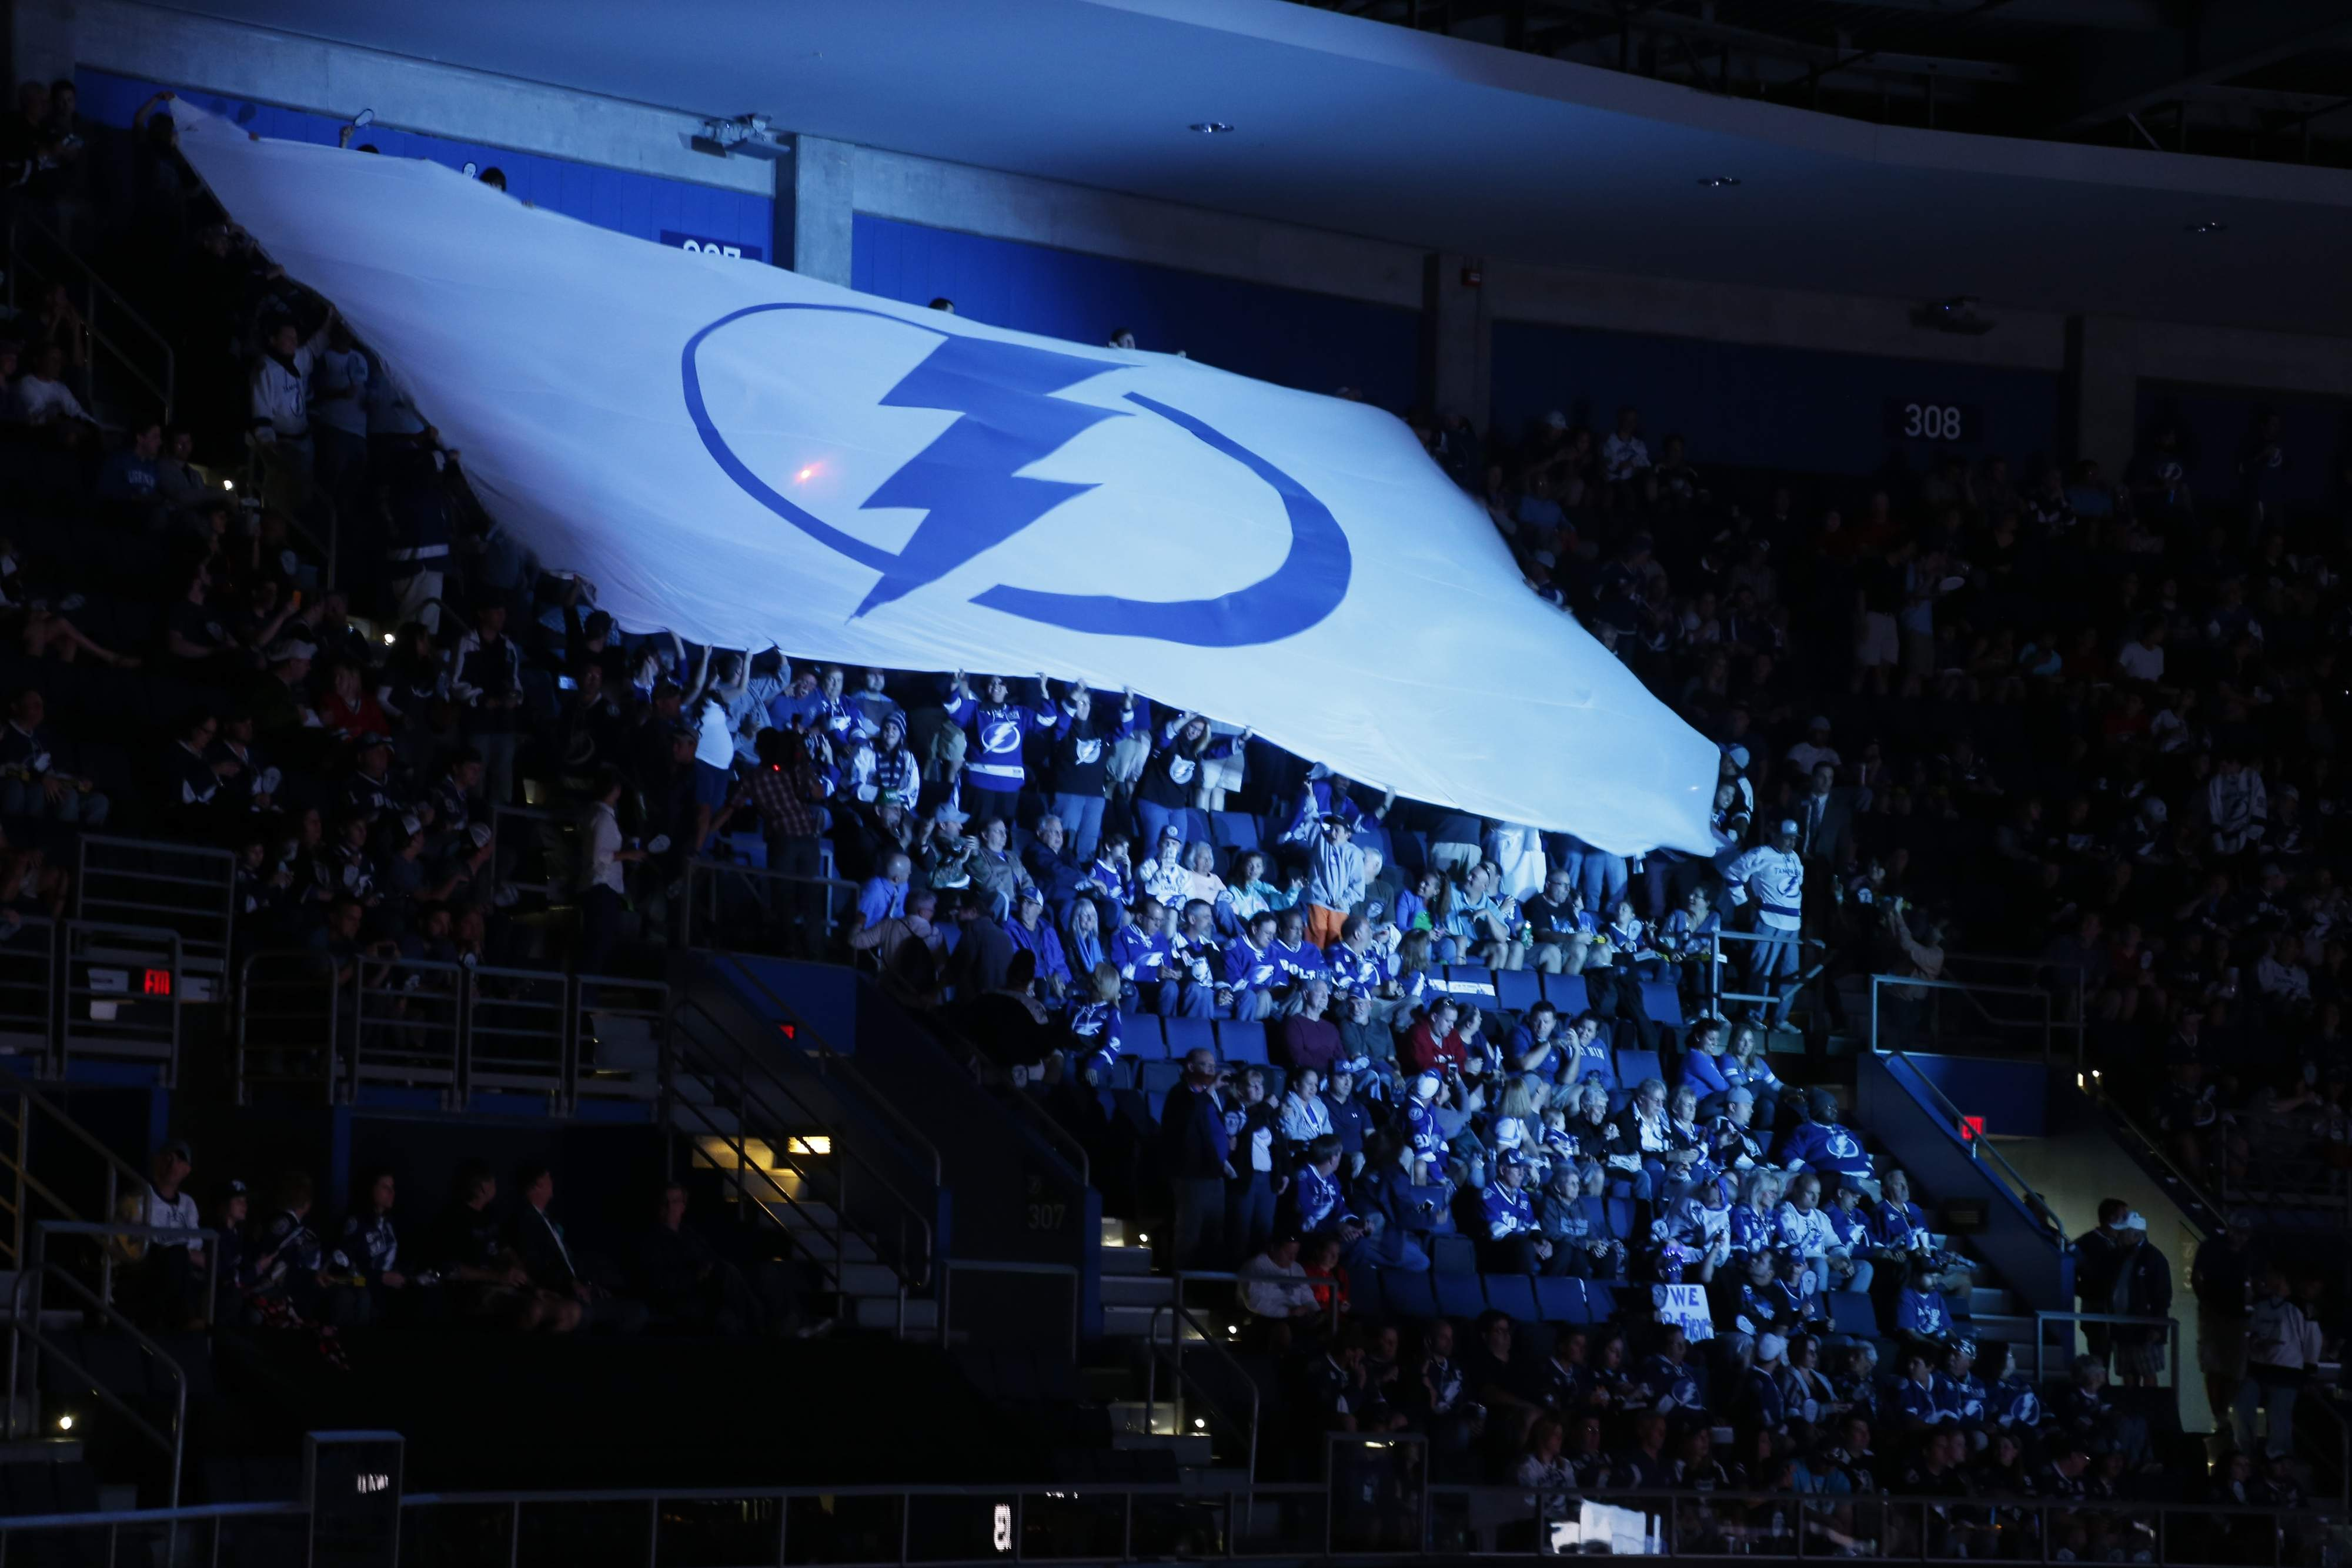 cd158d15a8d Red Wings fan tried to torch a giant Lightning flag inside Amalie Arena